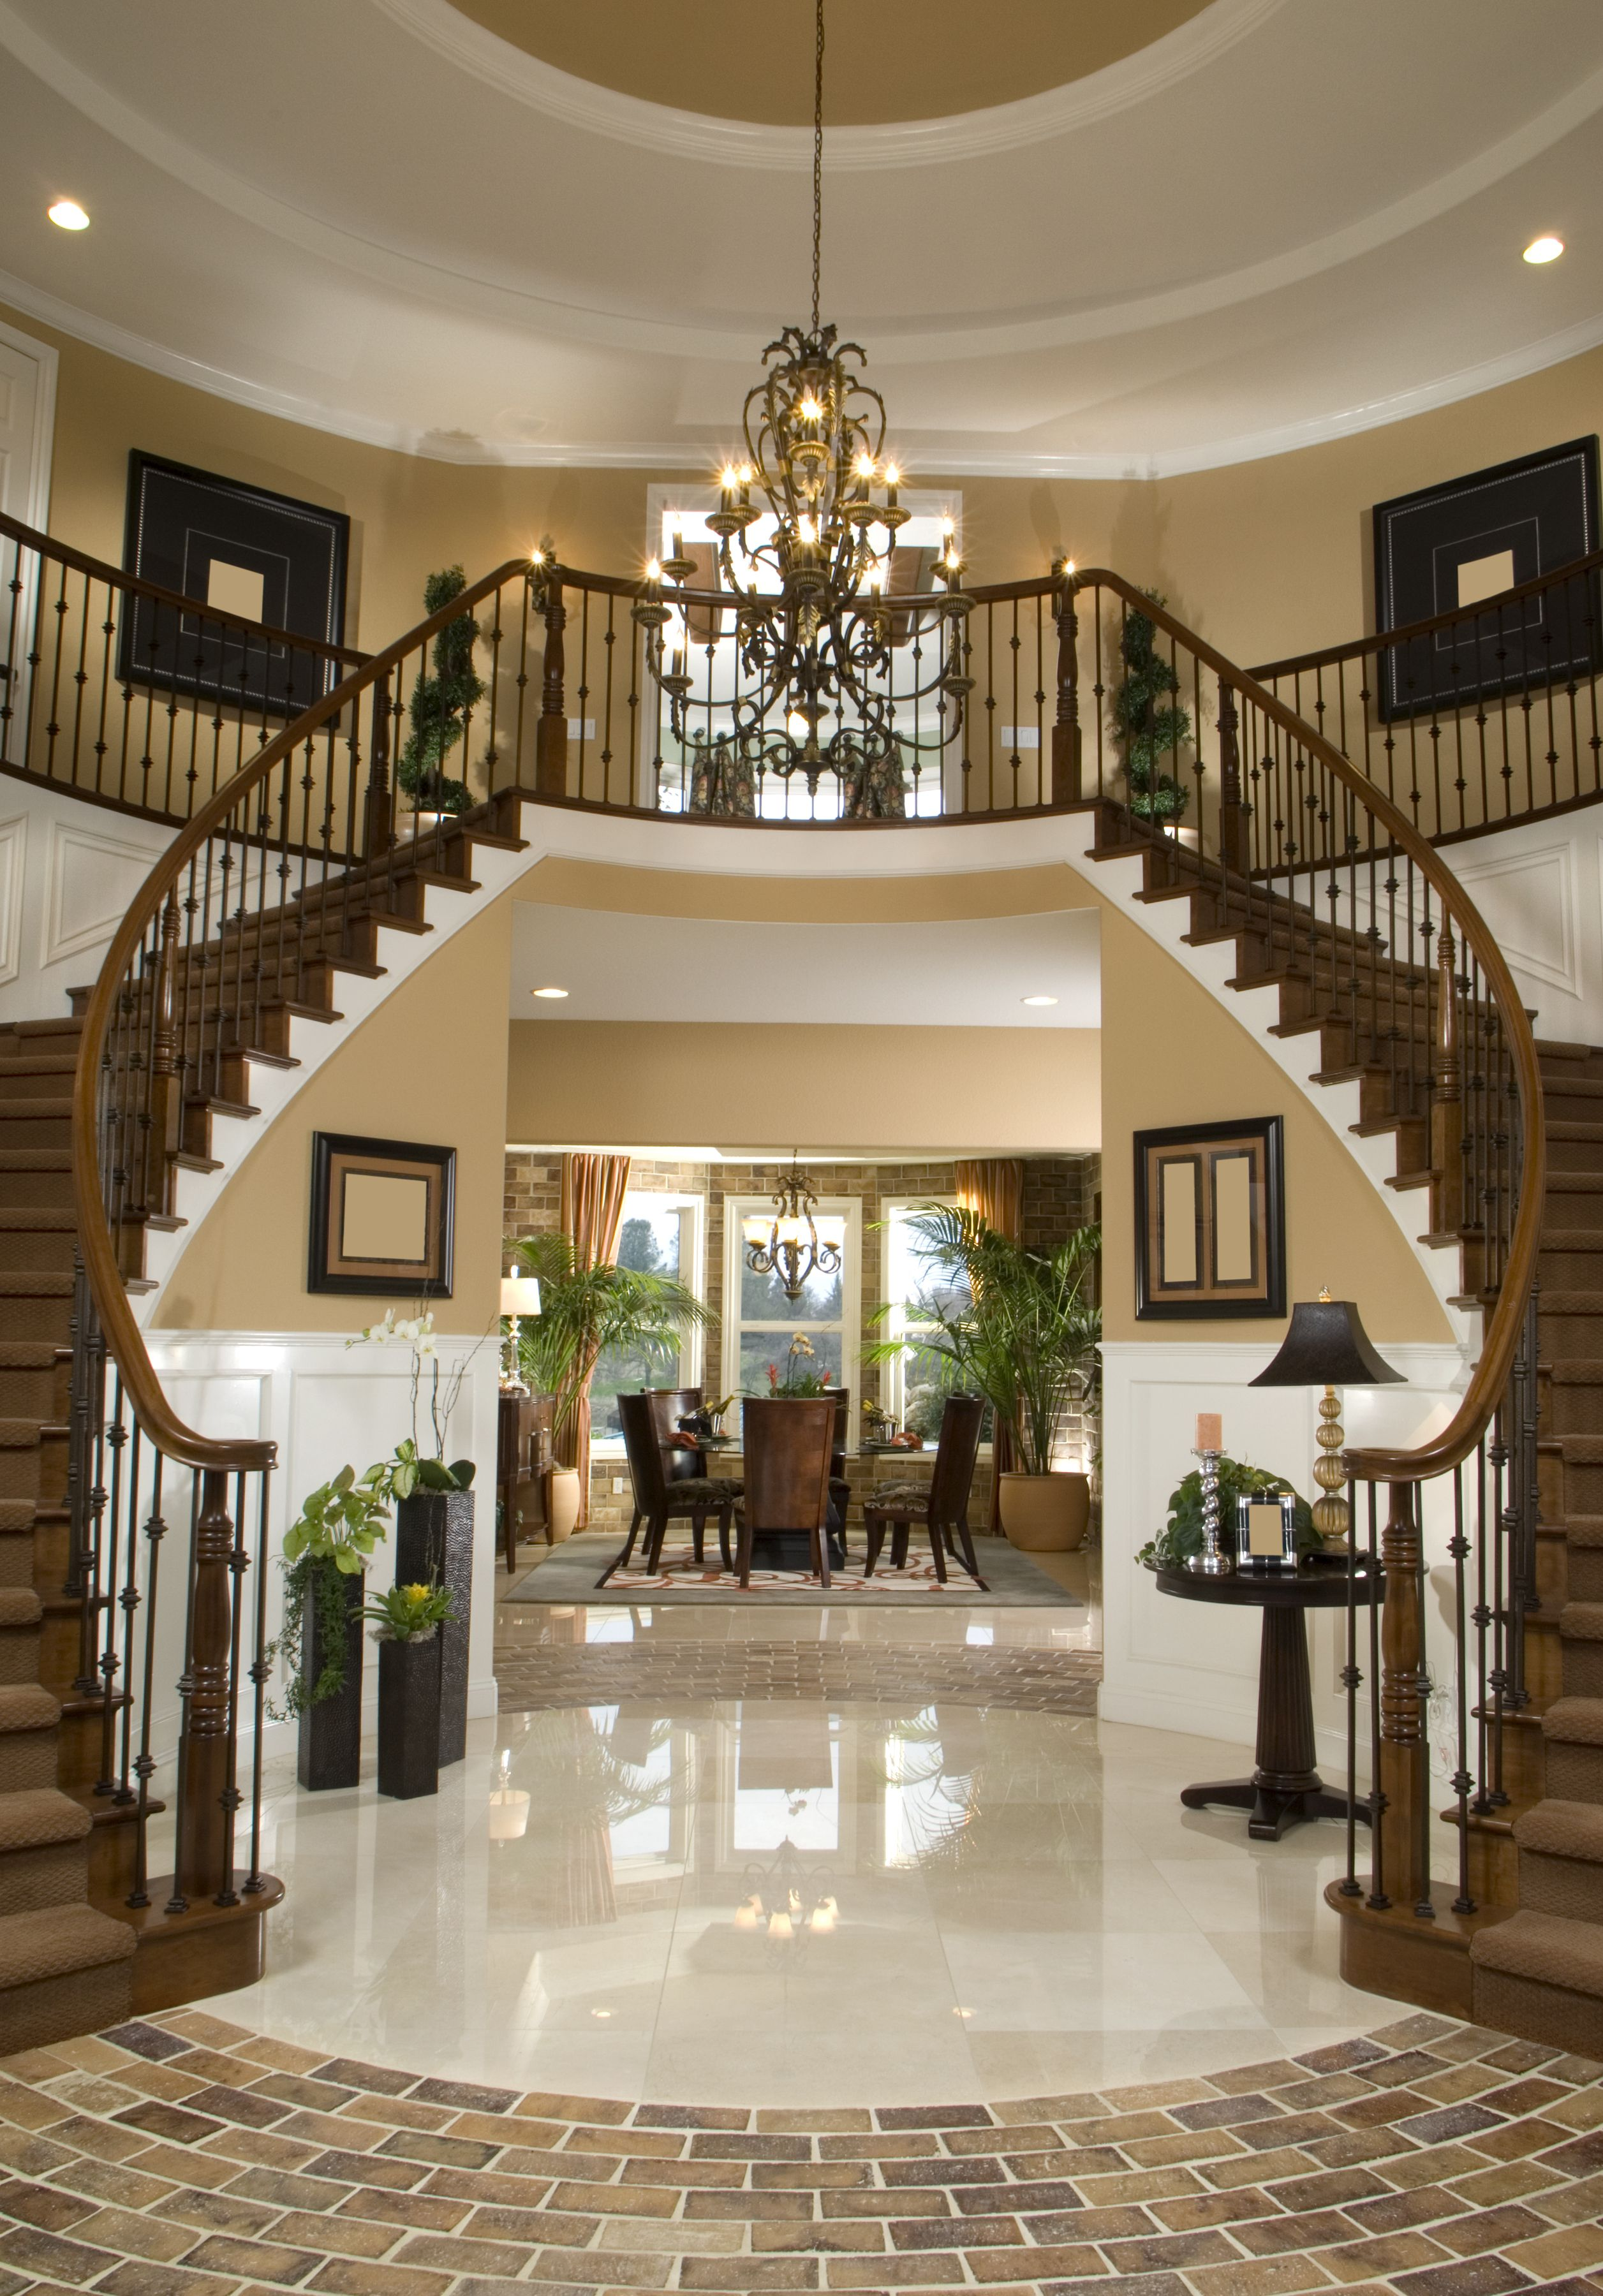 Entrance Foyer Circulation In A House : Grand entryway design my pinterest